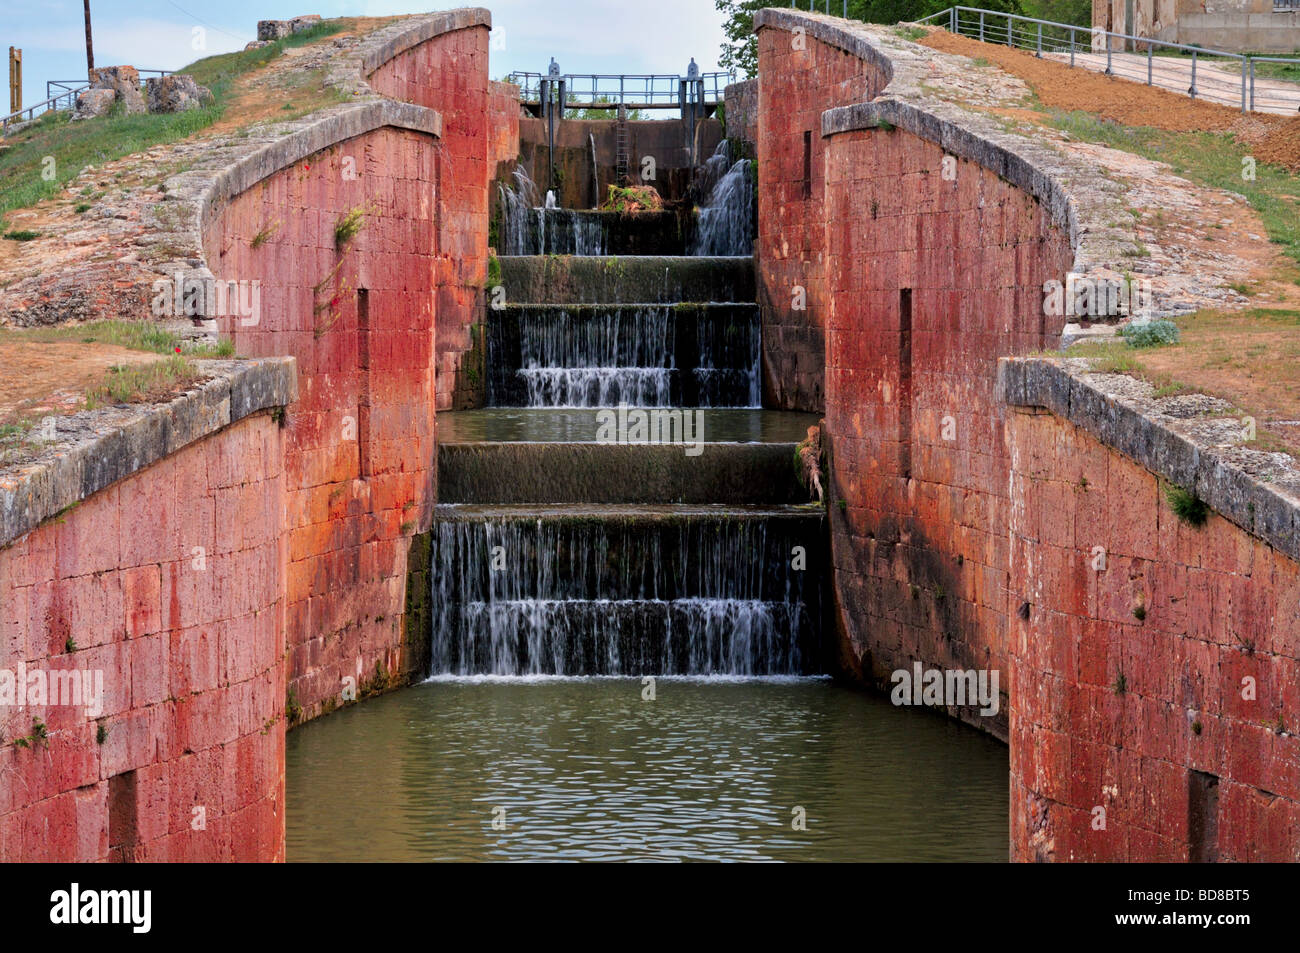 Spain, St. James Way: Canal de Castilla in Fromista - Stock Image